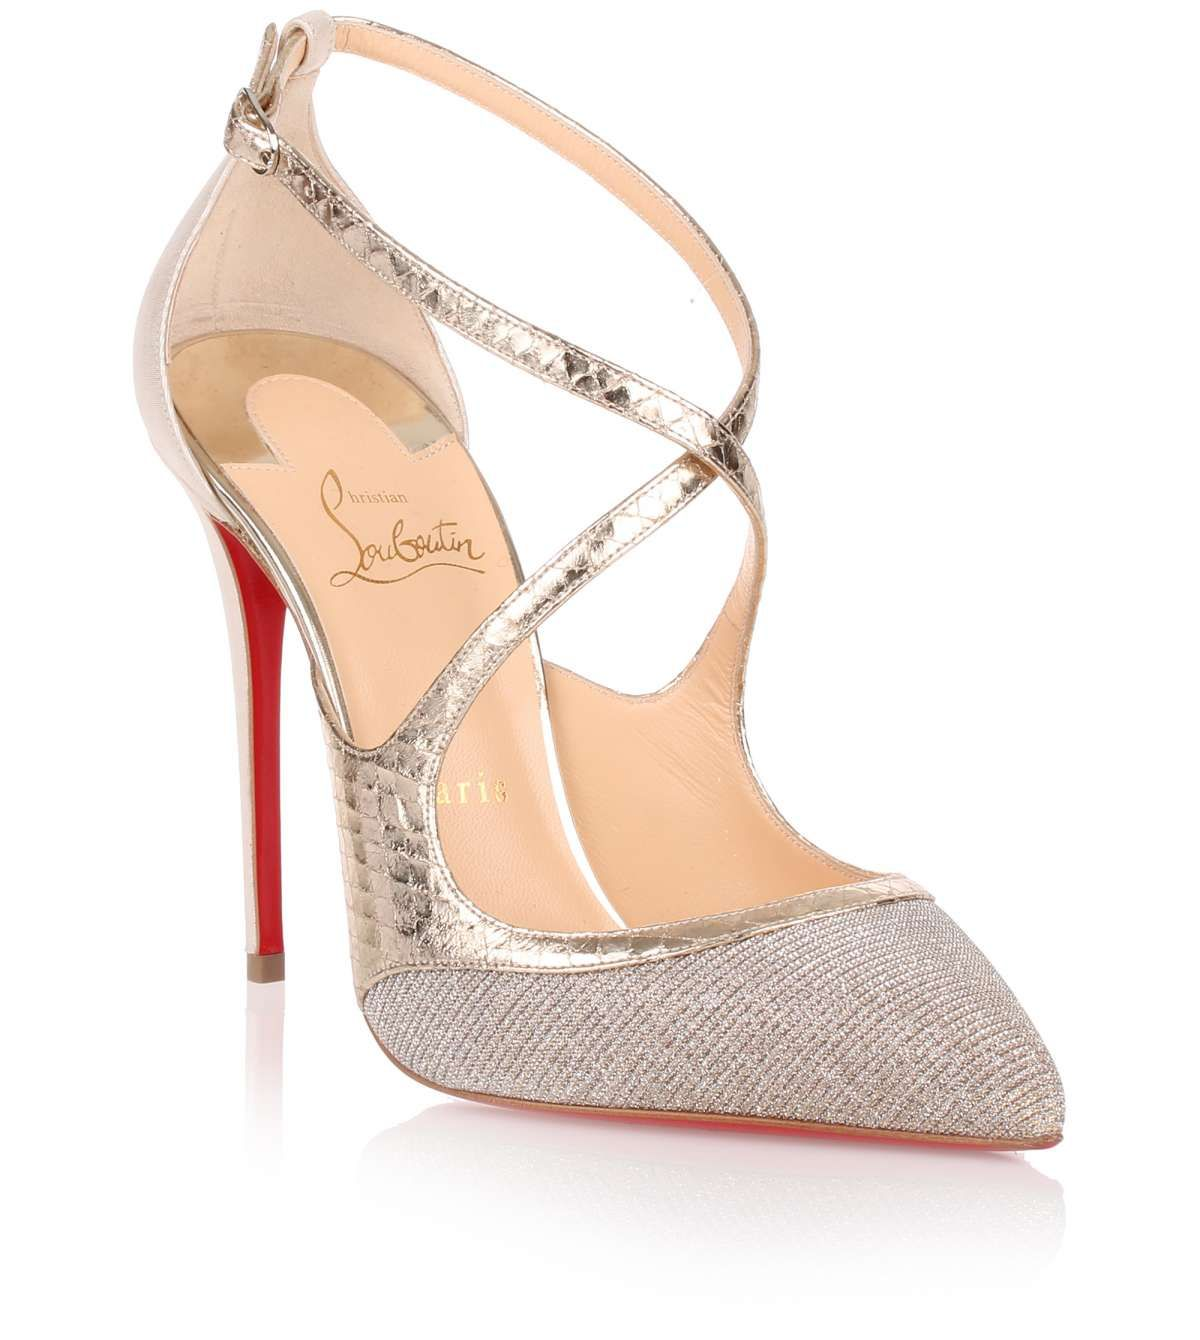 huge selection of 515cb 5415f Crissos 100 silver glitter pump | Beige, nude, grey&white ...